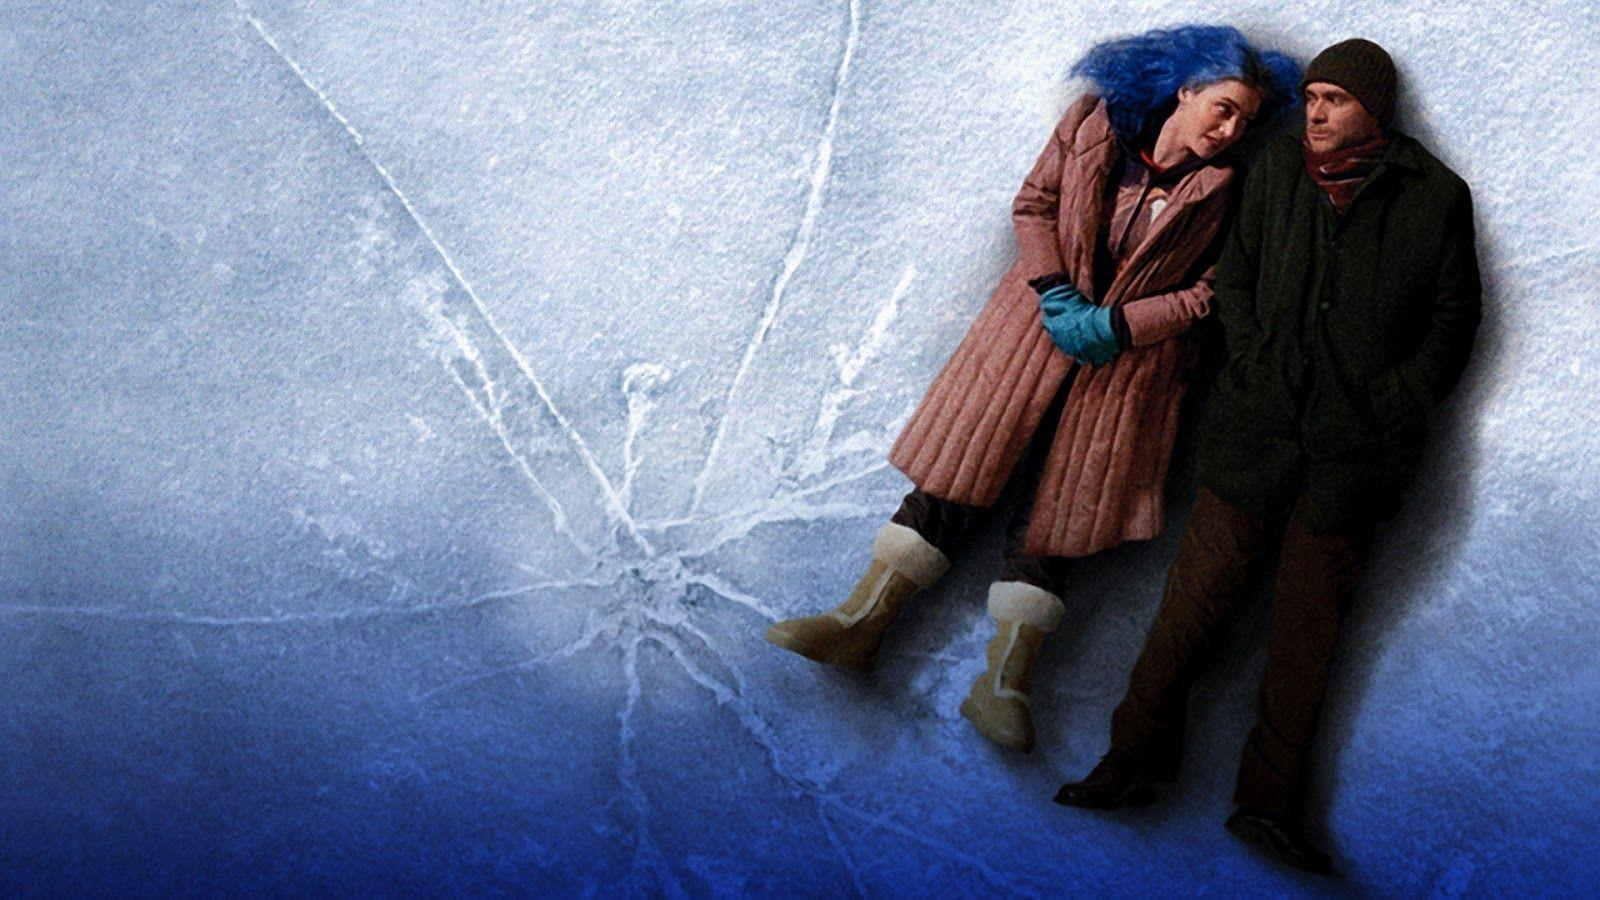 eternal sunshine of the spotless mind wallpaper Collection (66+)